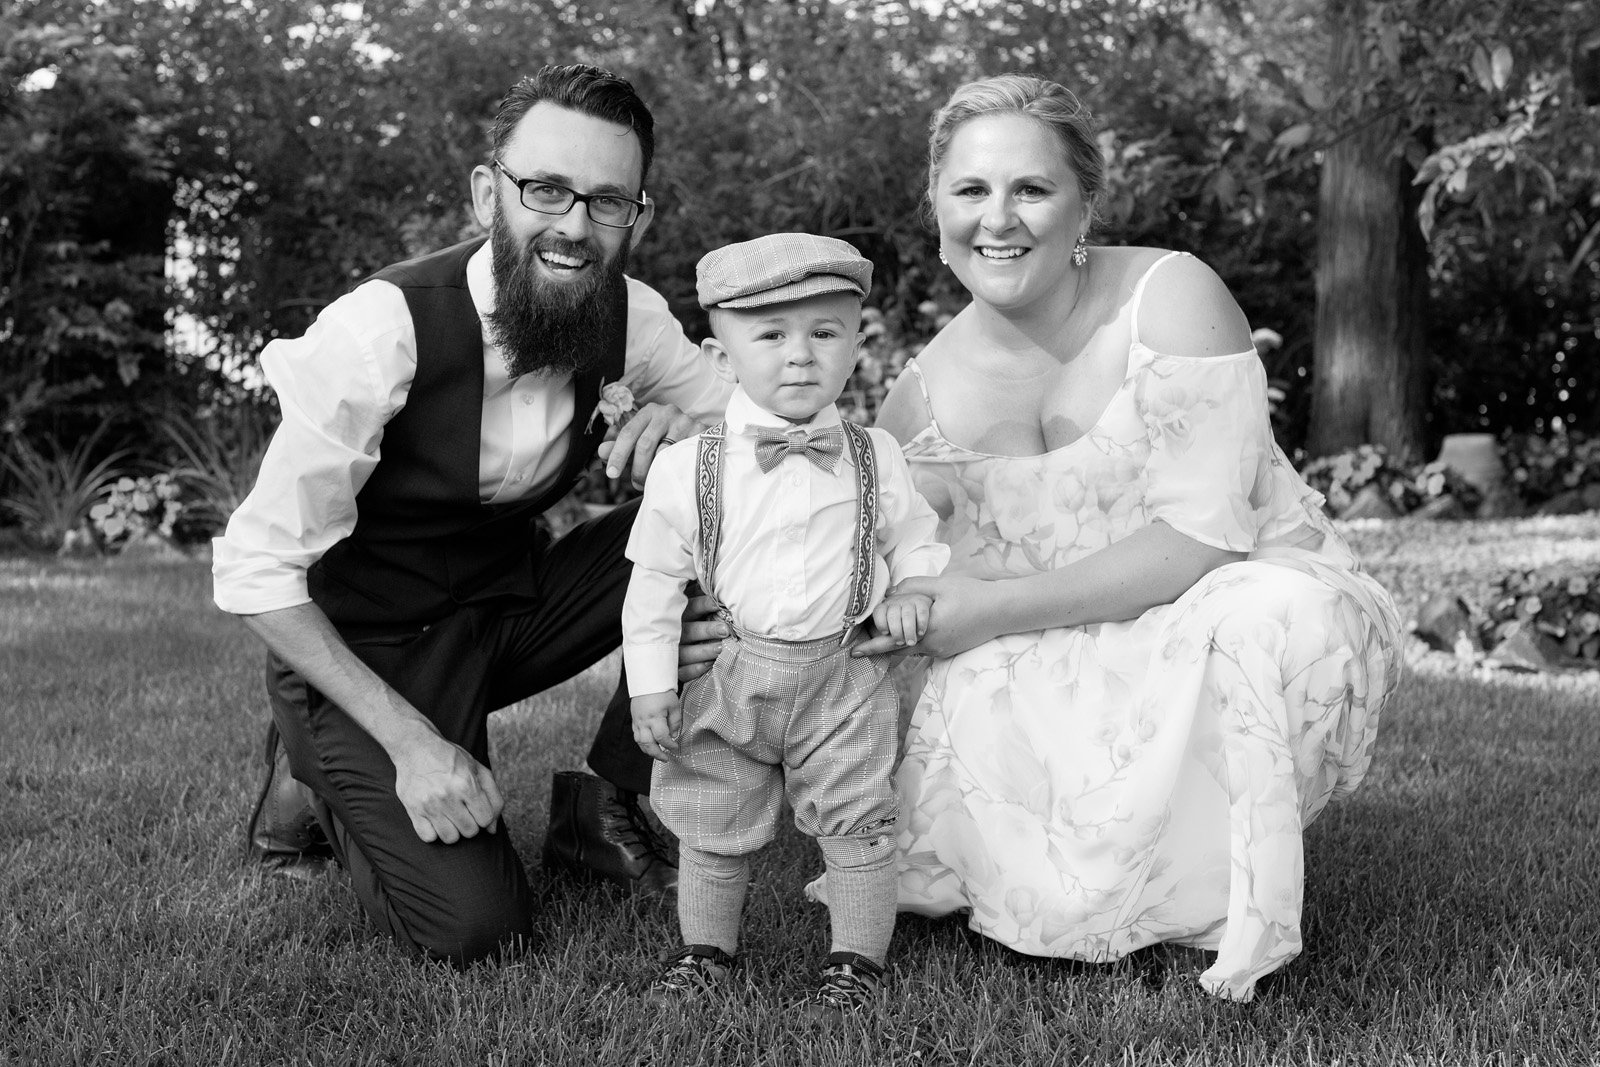 Cute wedding portrait of ring bearer in black and white